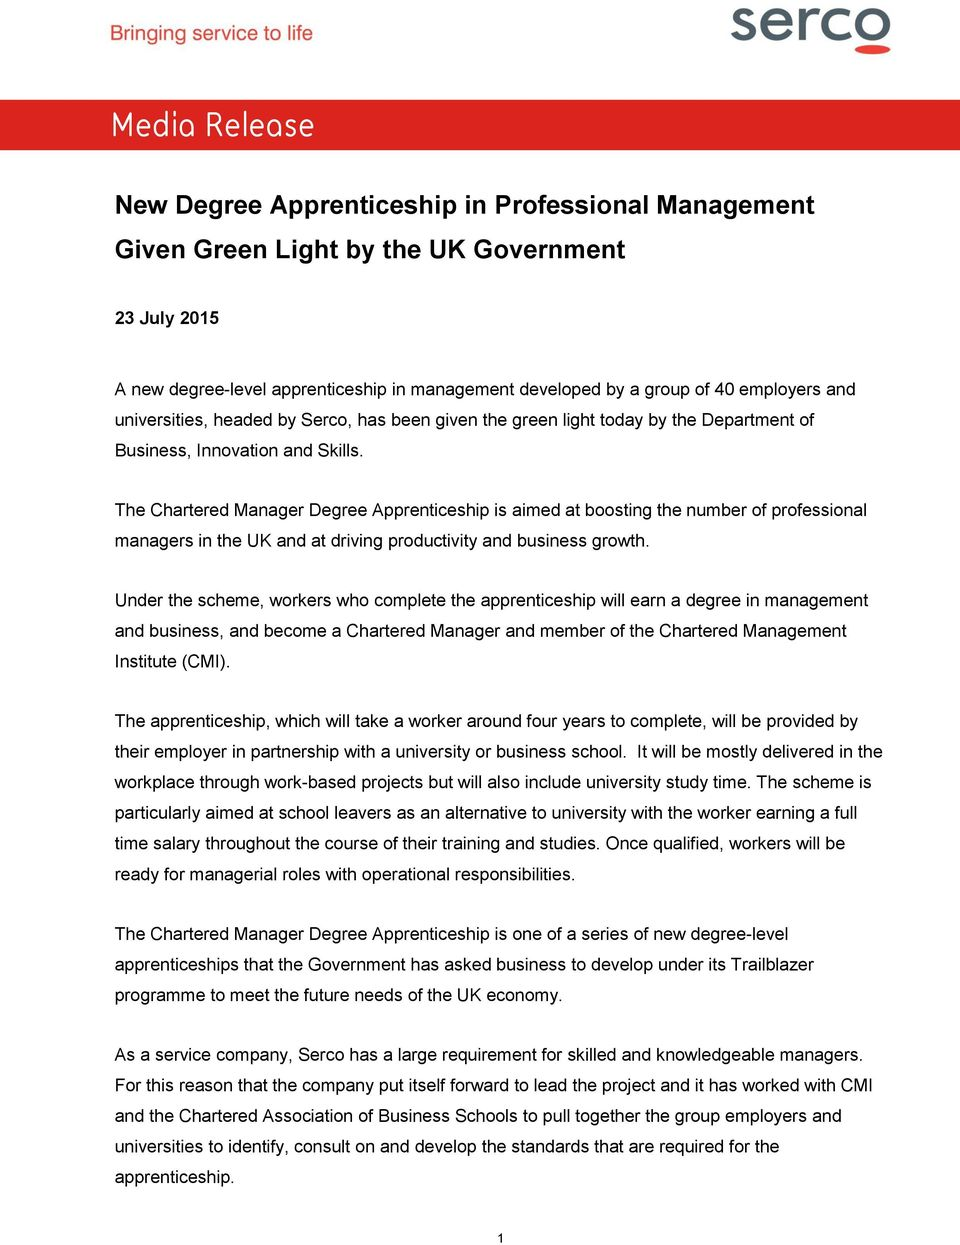 The Chartered Manager Degree Apprenticeship is aimed at boosting the number of professional managers in the UK and at driving productivity and business growth.